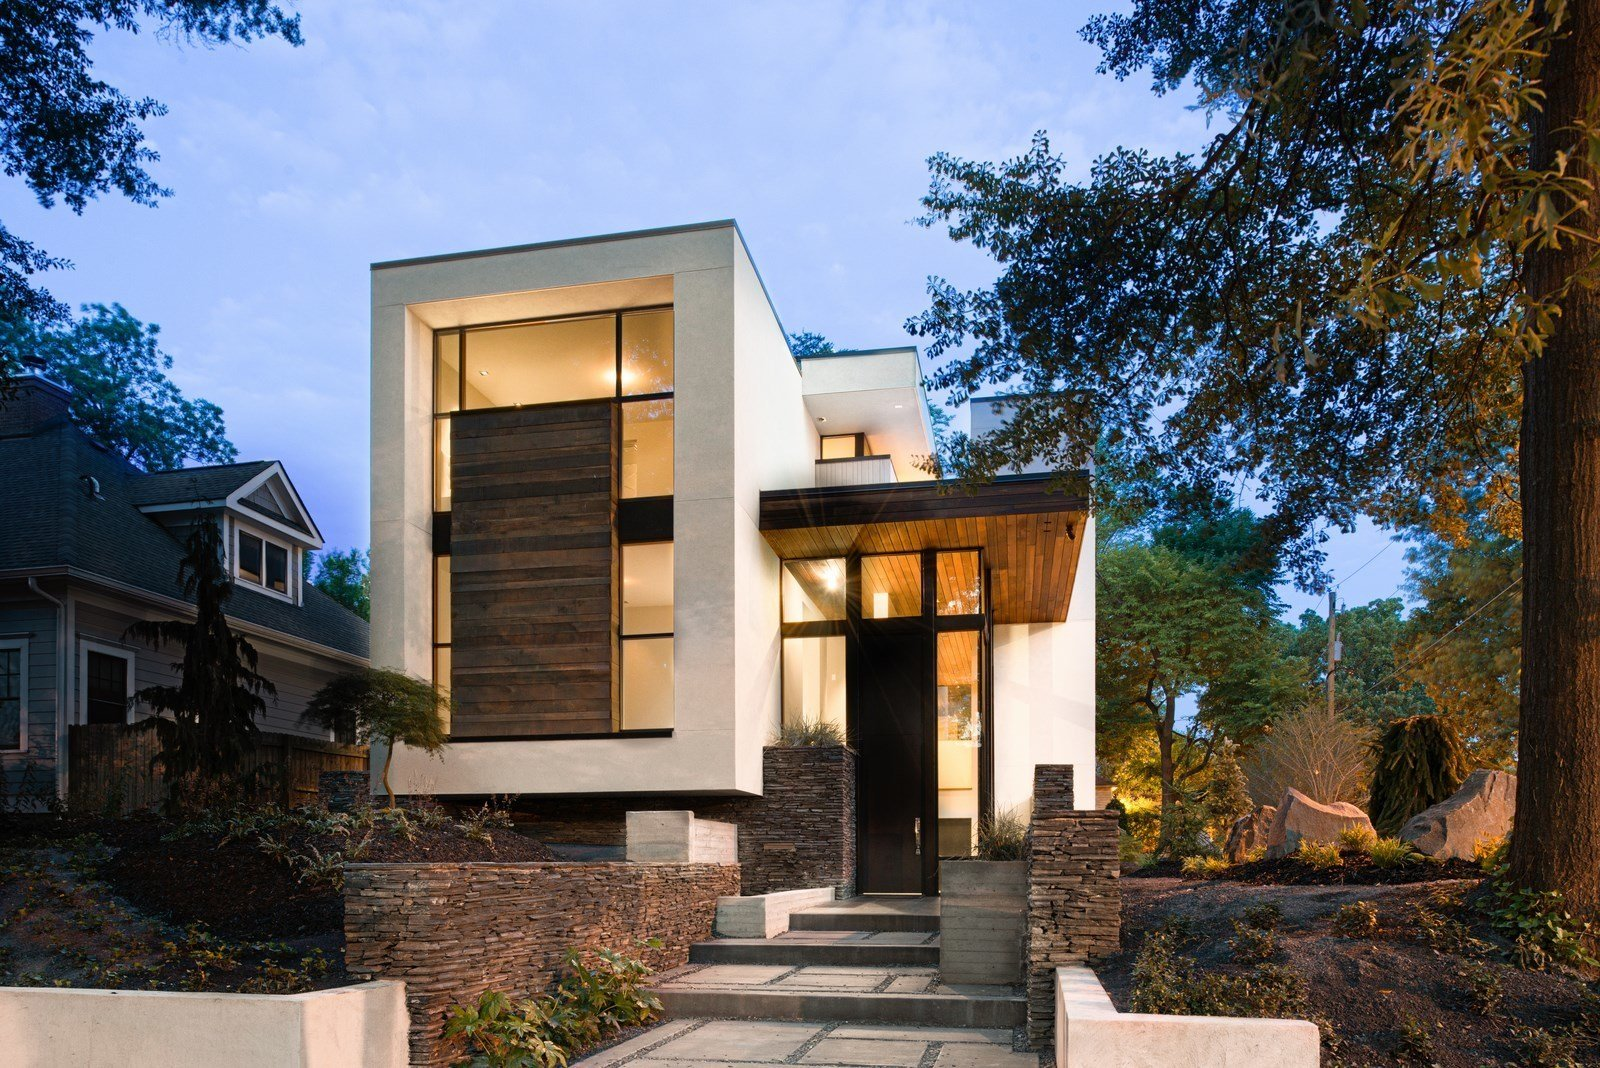 Alaska House Modern Home in Atlanta, Georgia by West